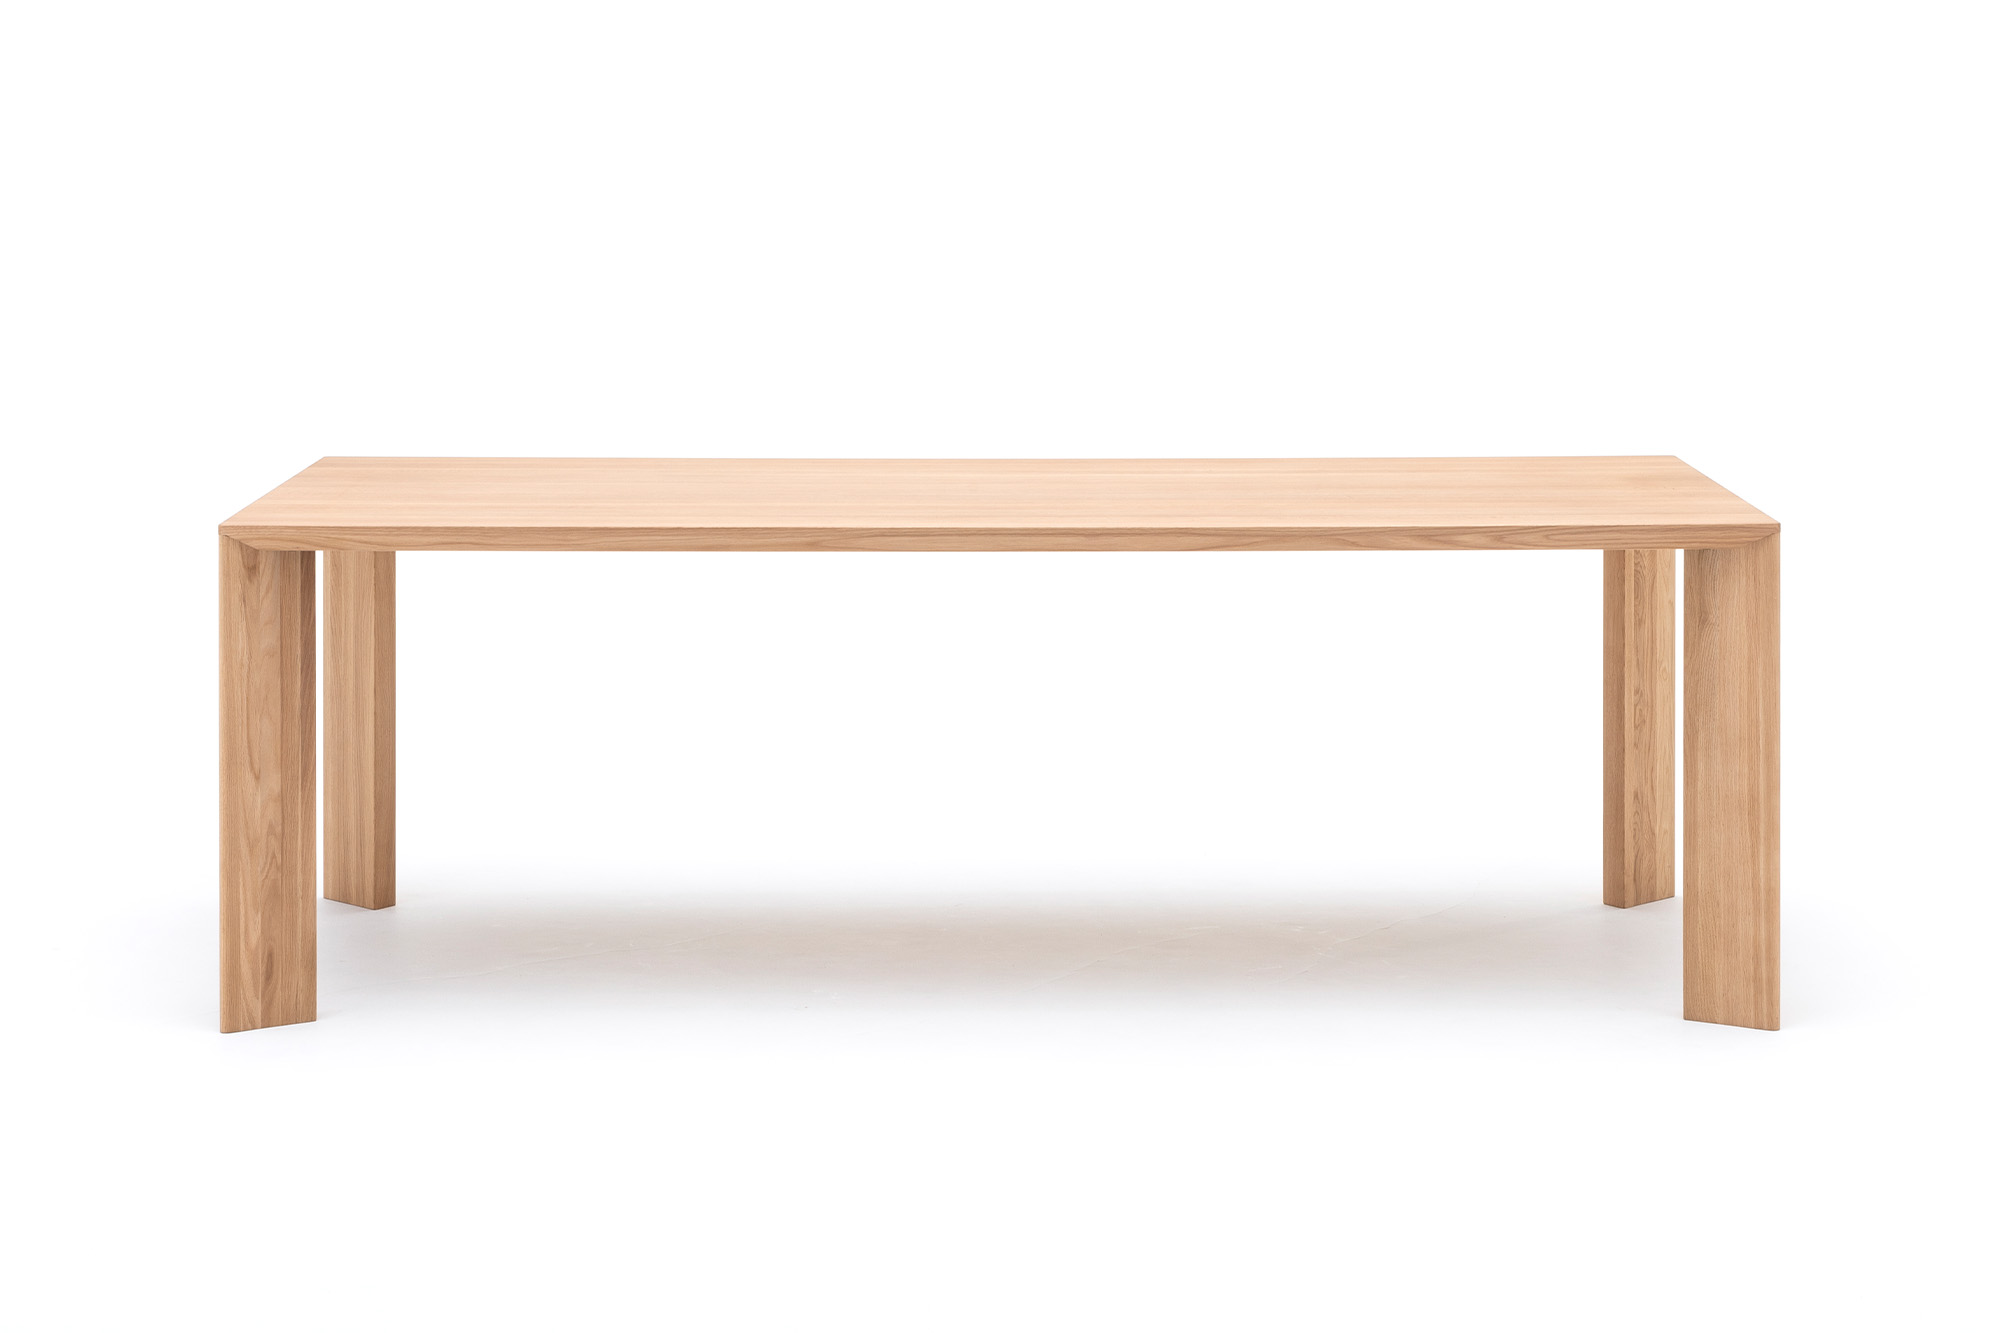 A-DT02 Dining Table